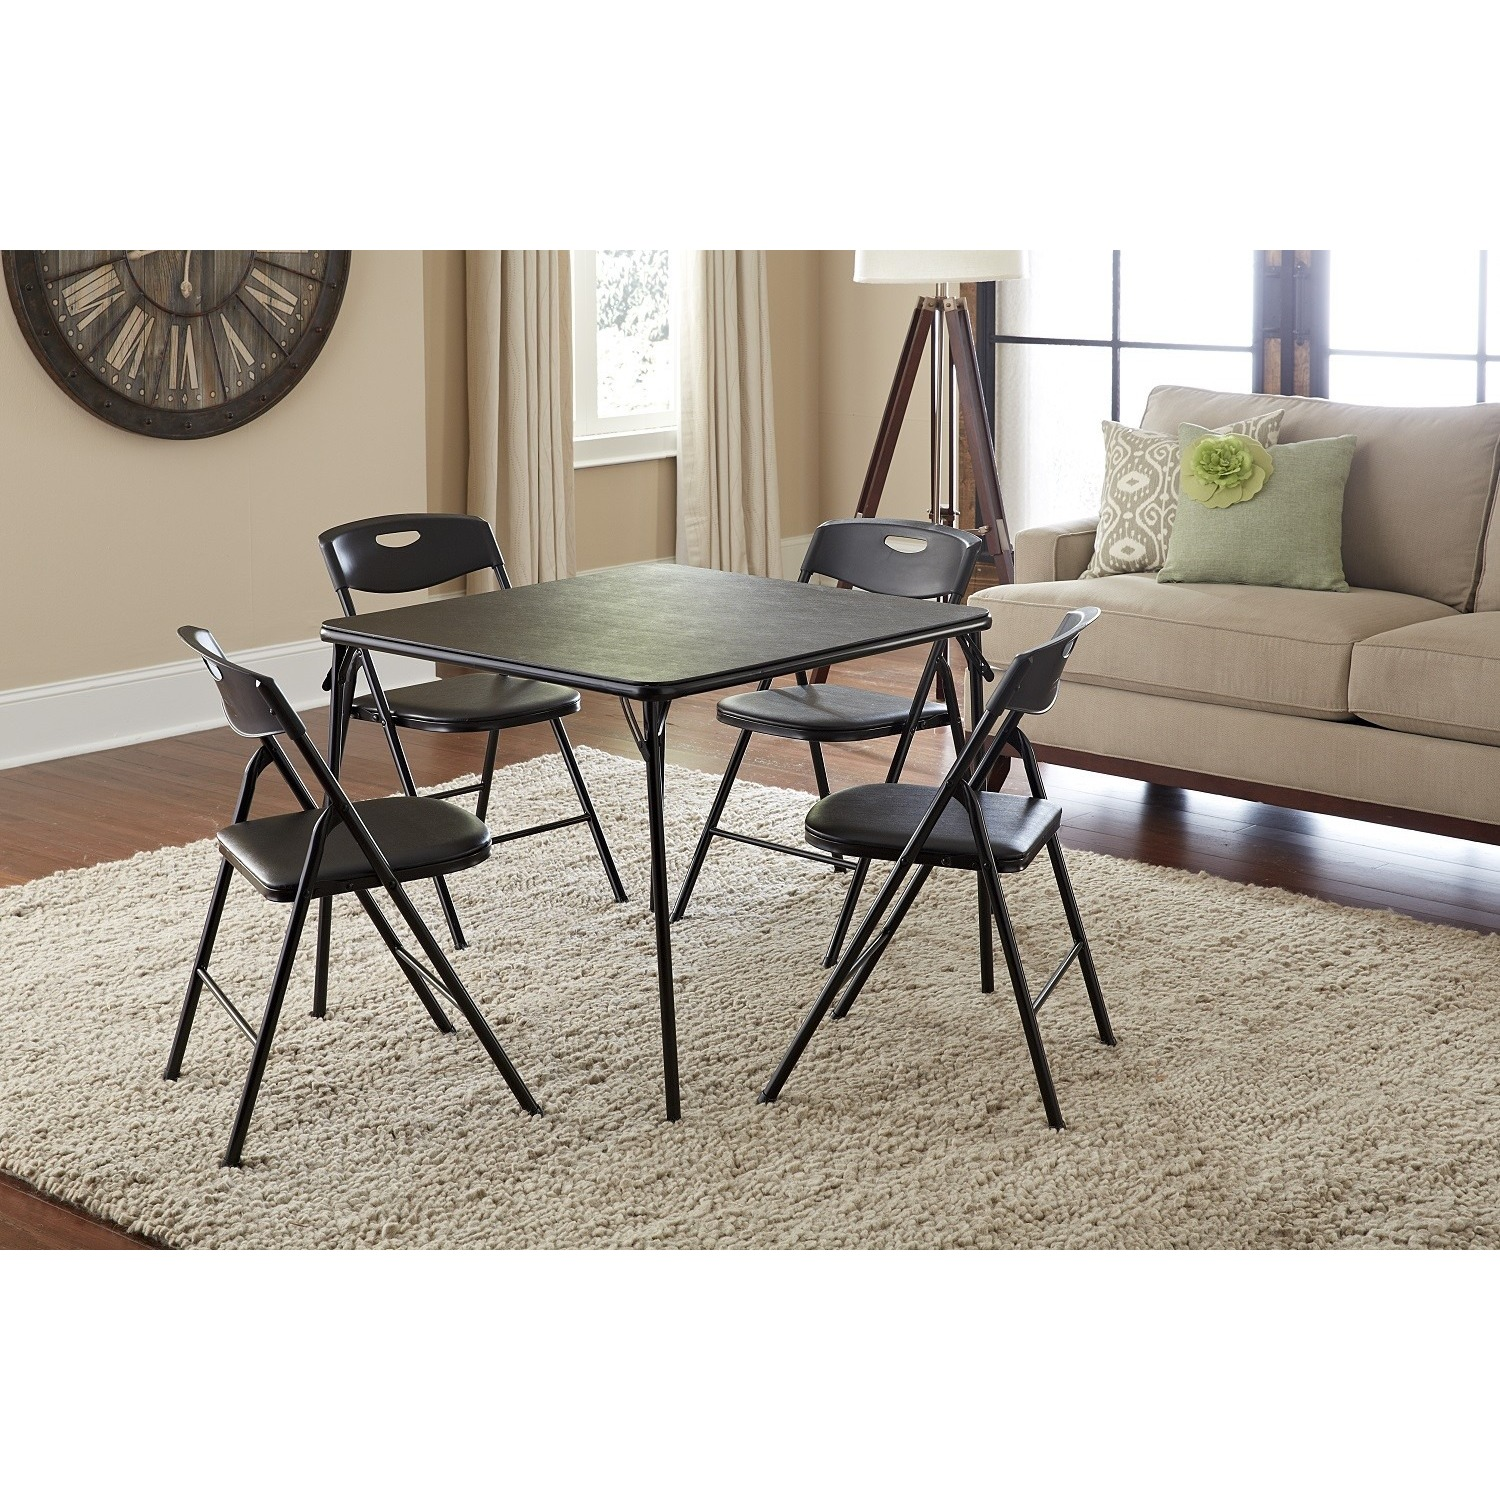 Cosco 5-piece Folding Table and Chairs Set - Free Shipping Today ...